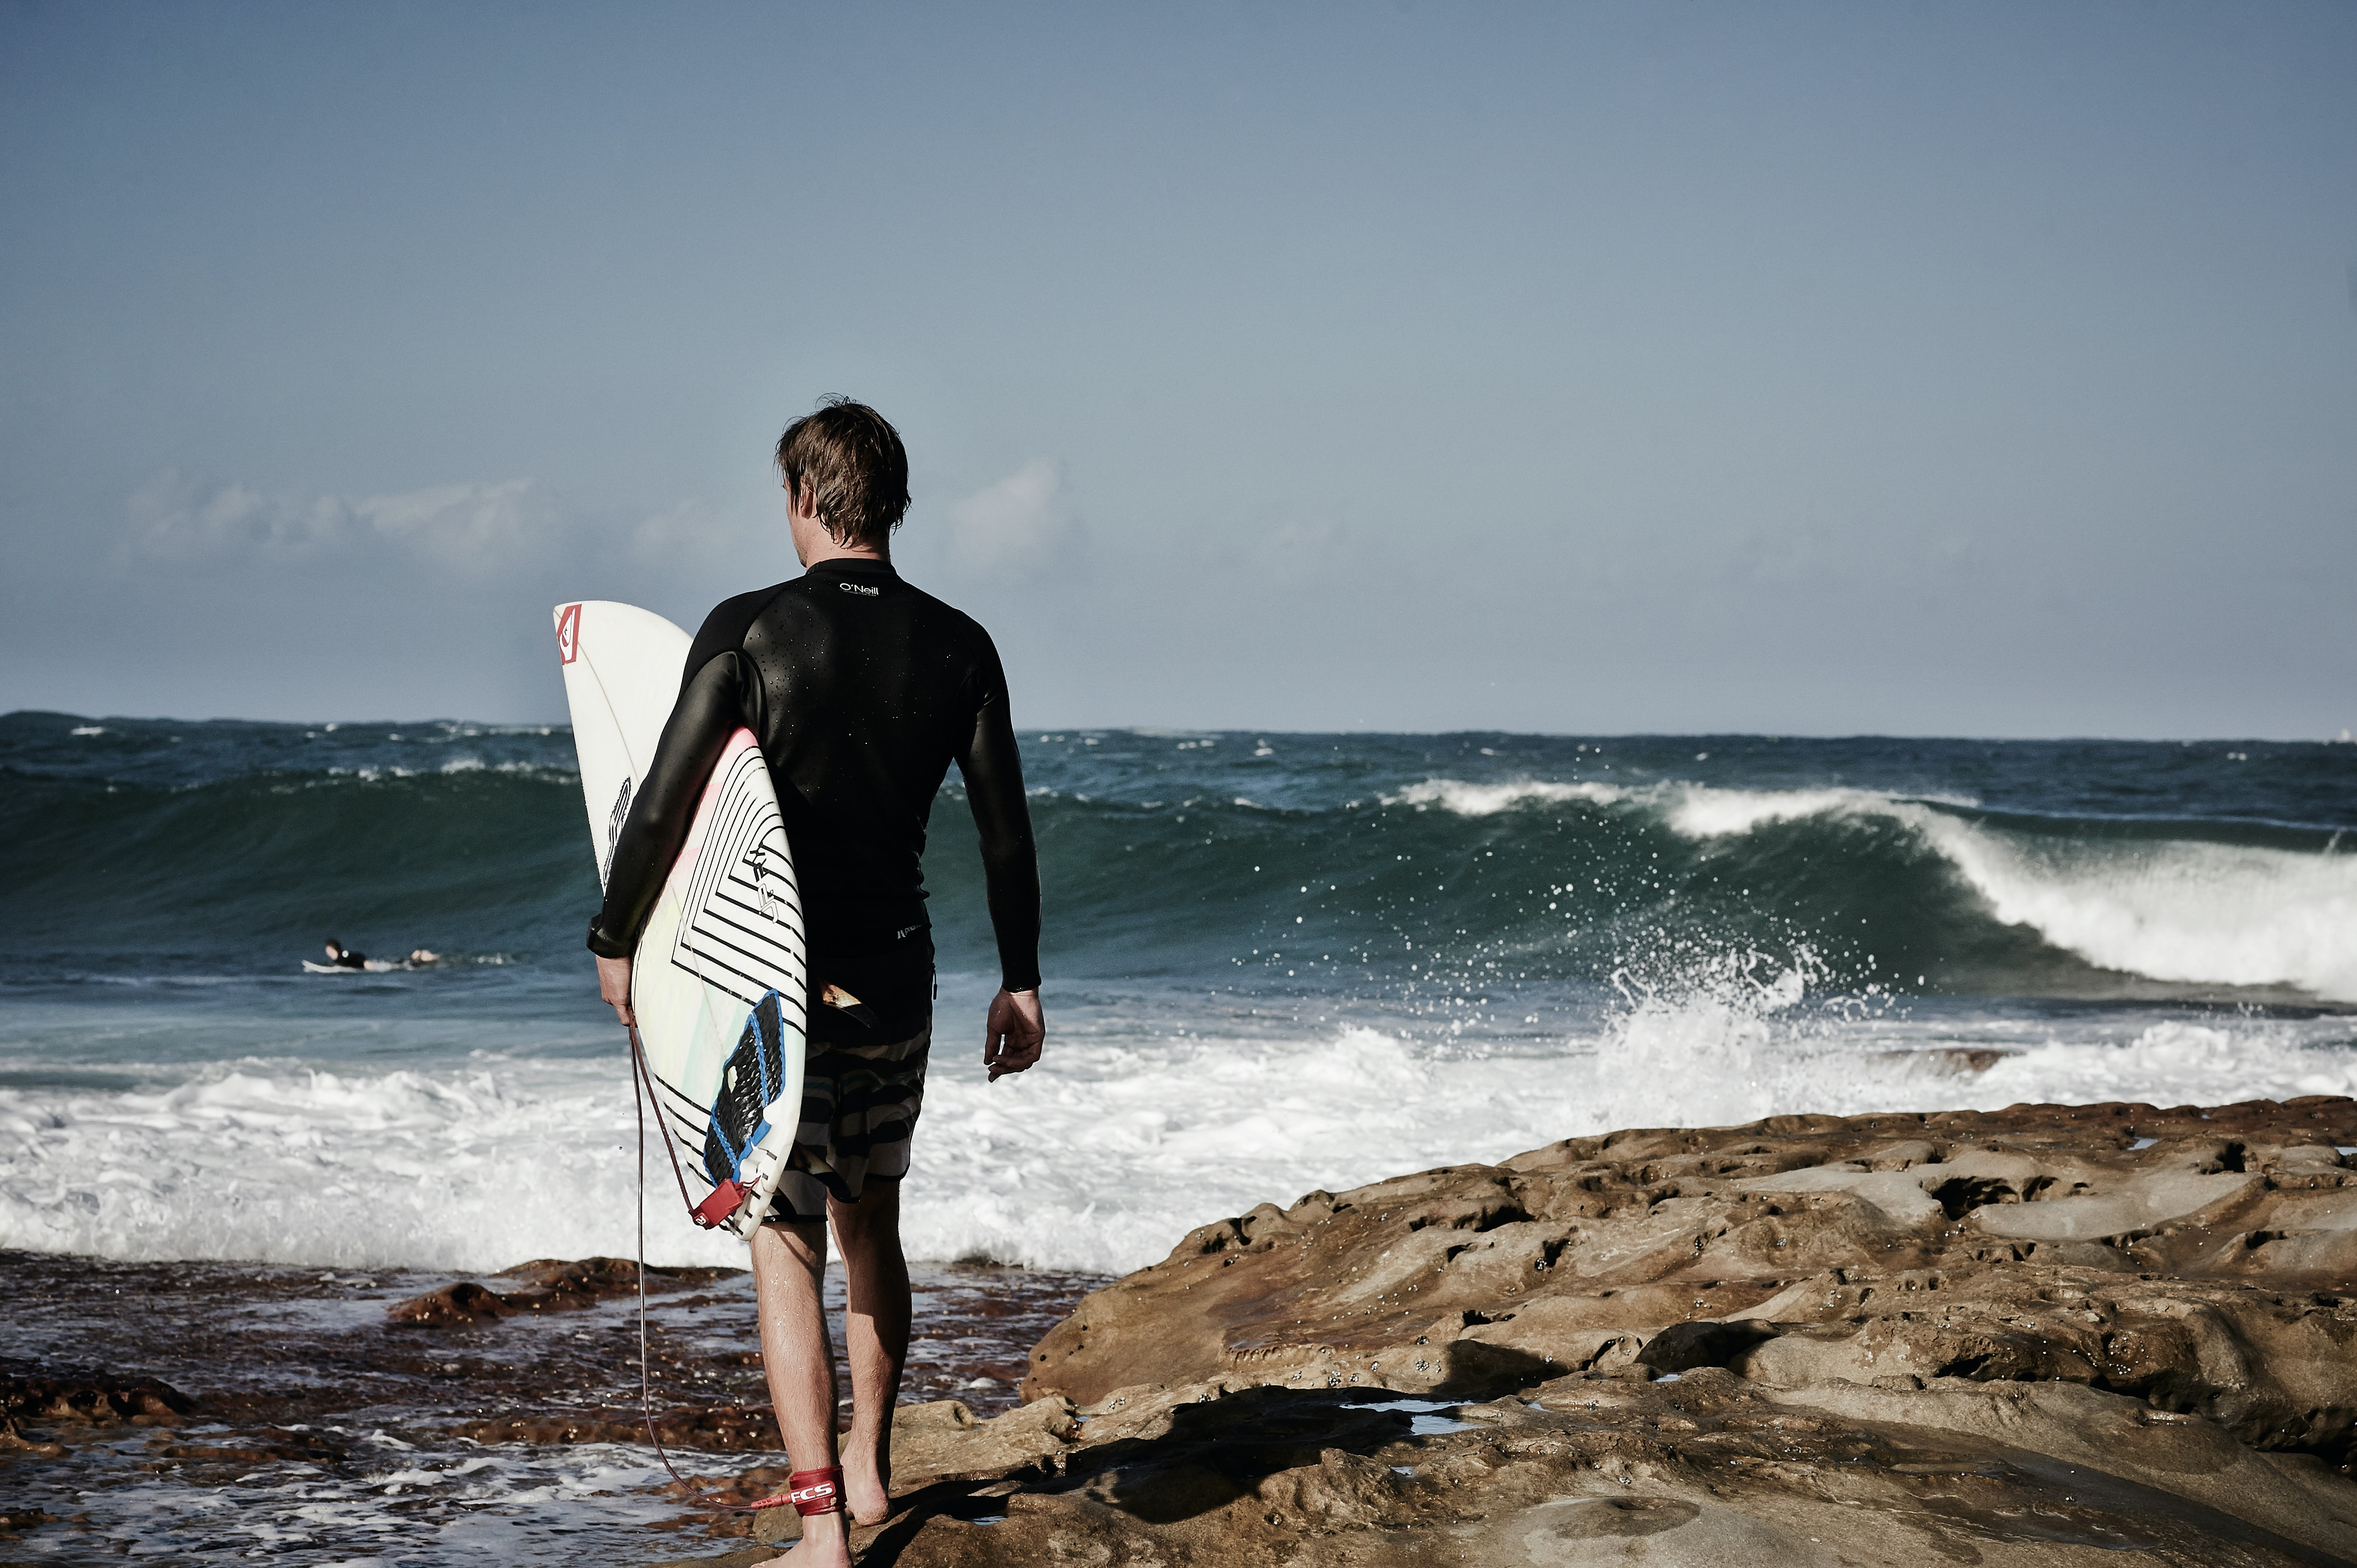 A guy wearing a wetsuit holding a surfboard looking out into the waves at Dee Why